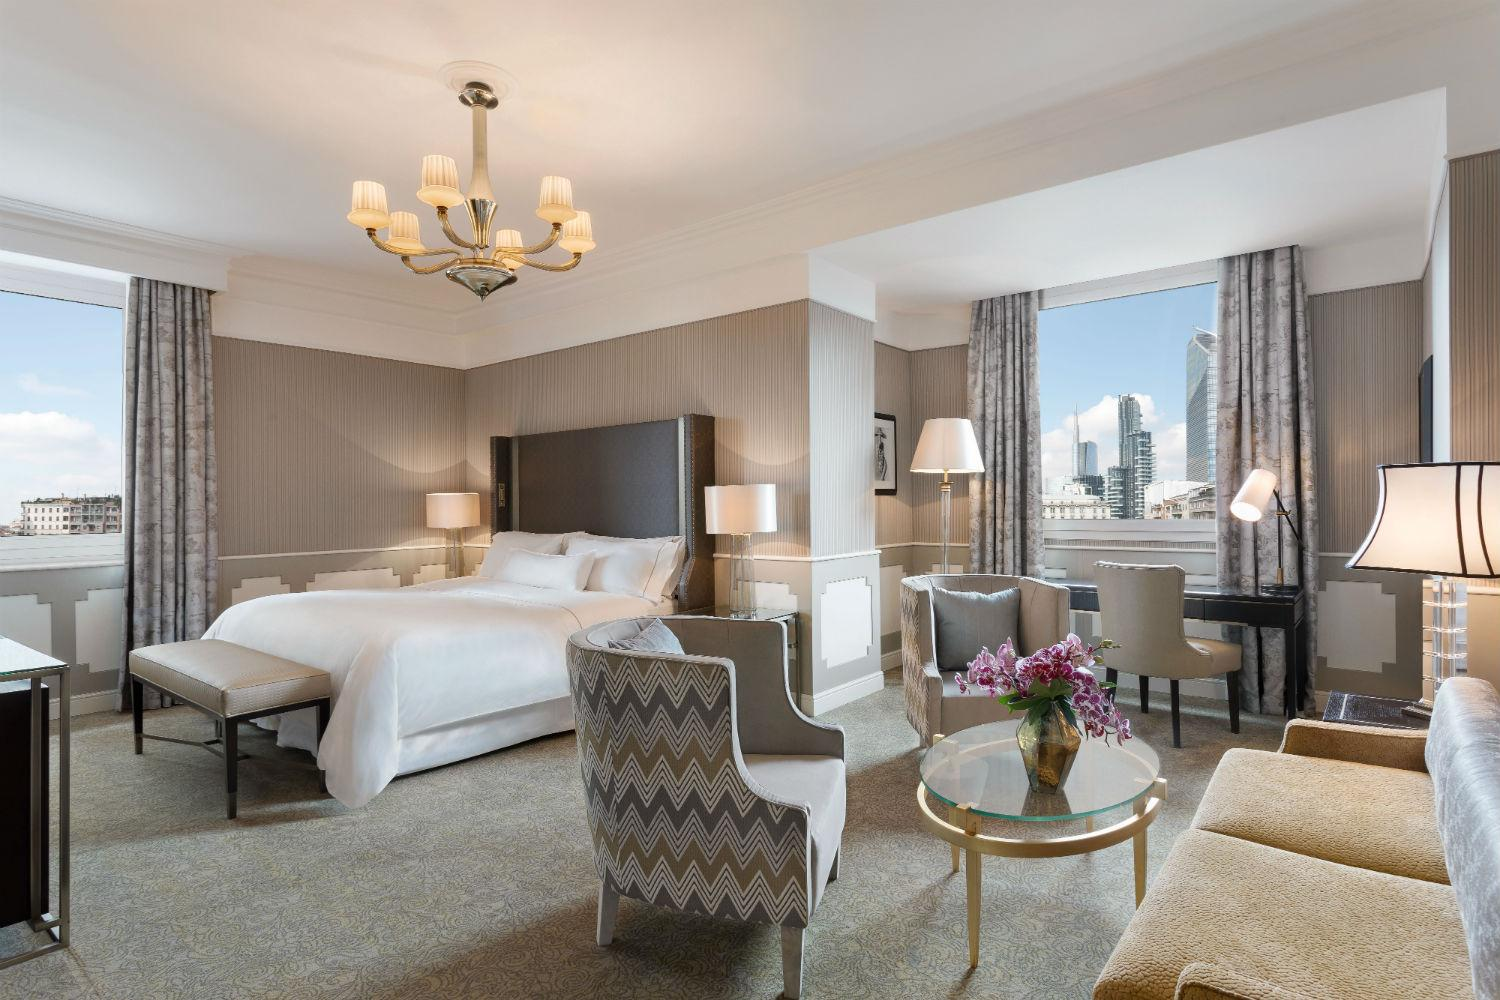 King Grand Deluxe Contemporary Guest Room